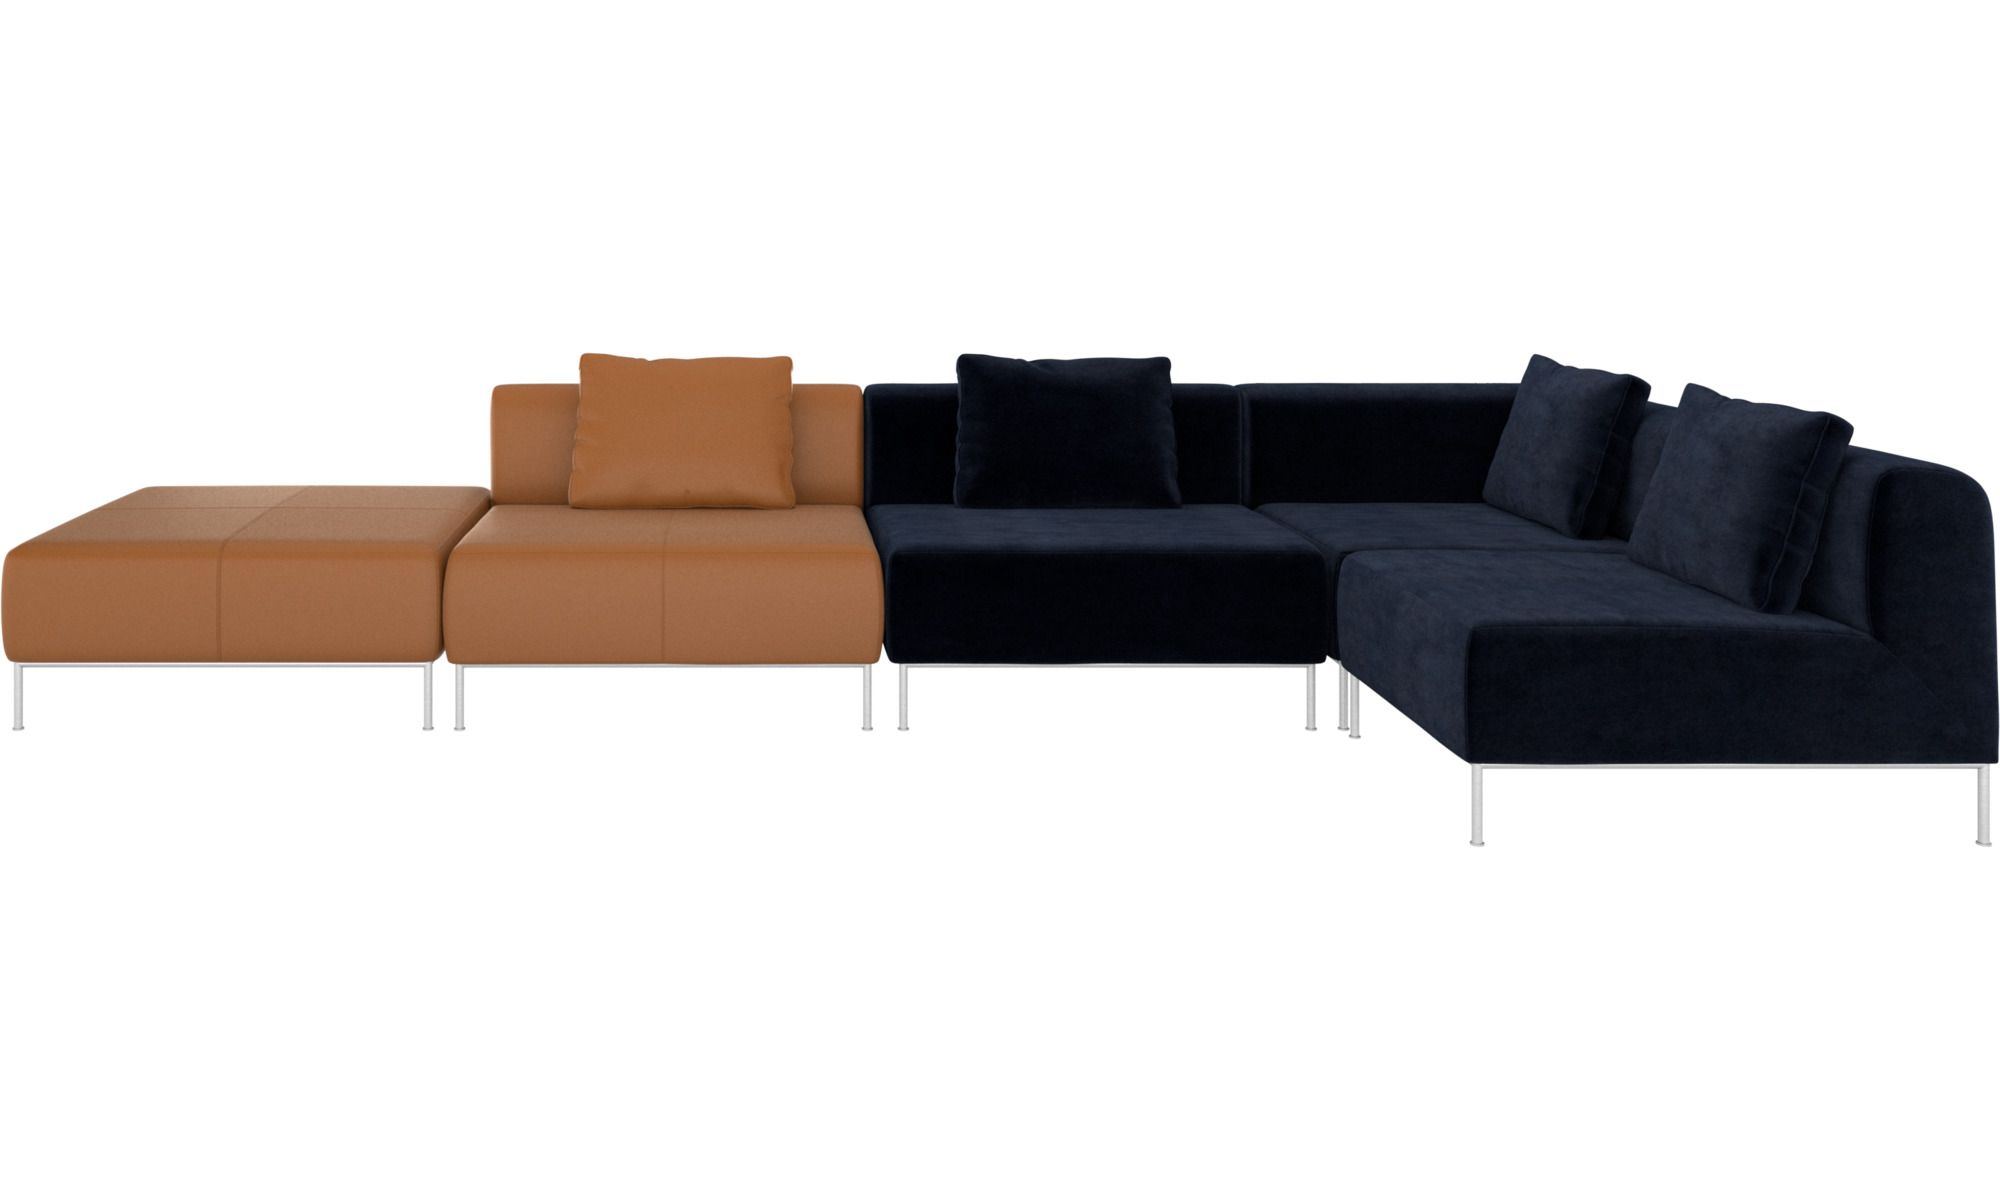 Modular Sofas - Miami Corner Sofa With Footstool On Left Side - BoConcept